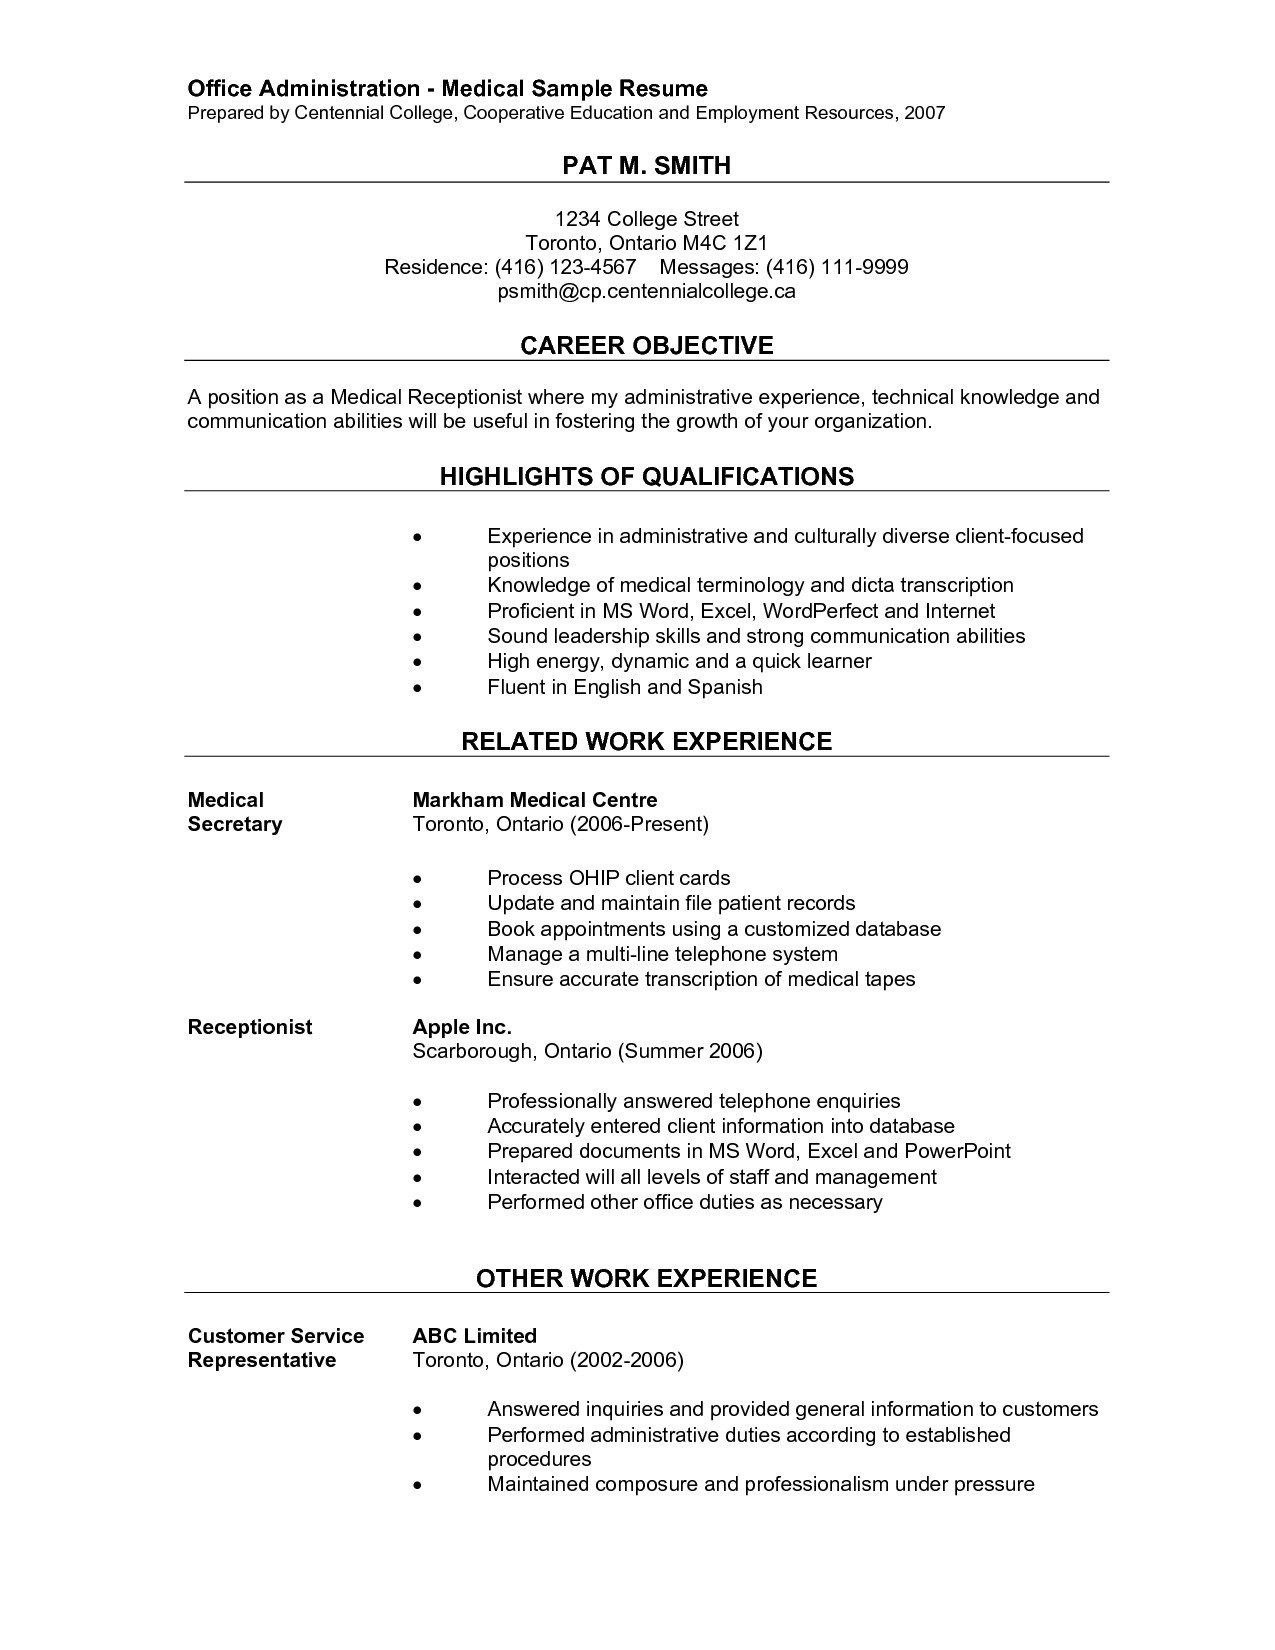 30 Airline Customer Service Resume Medical assistant